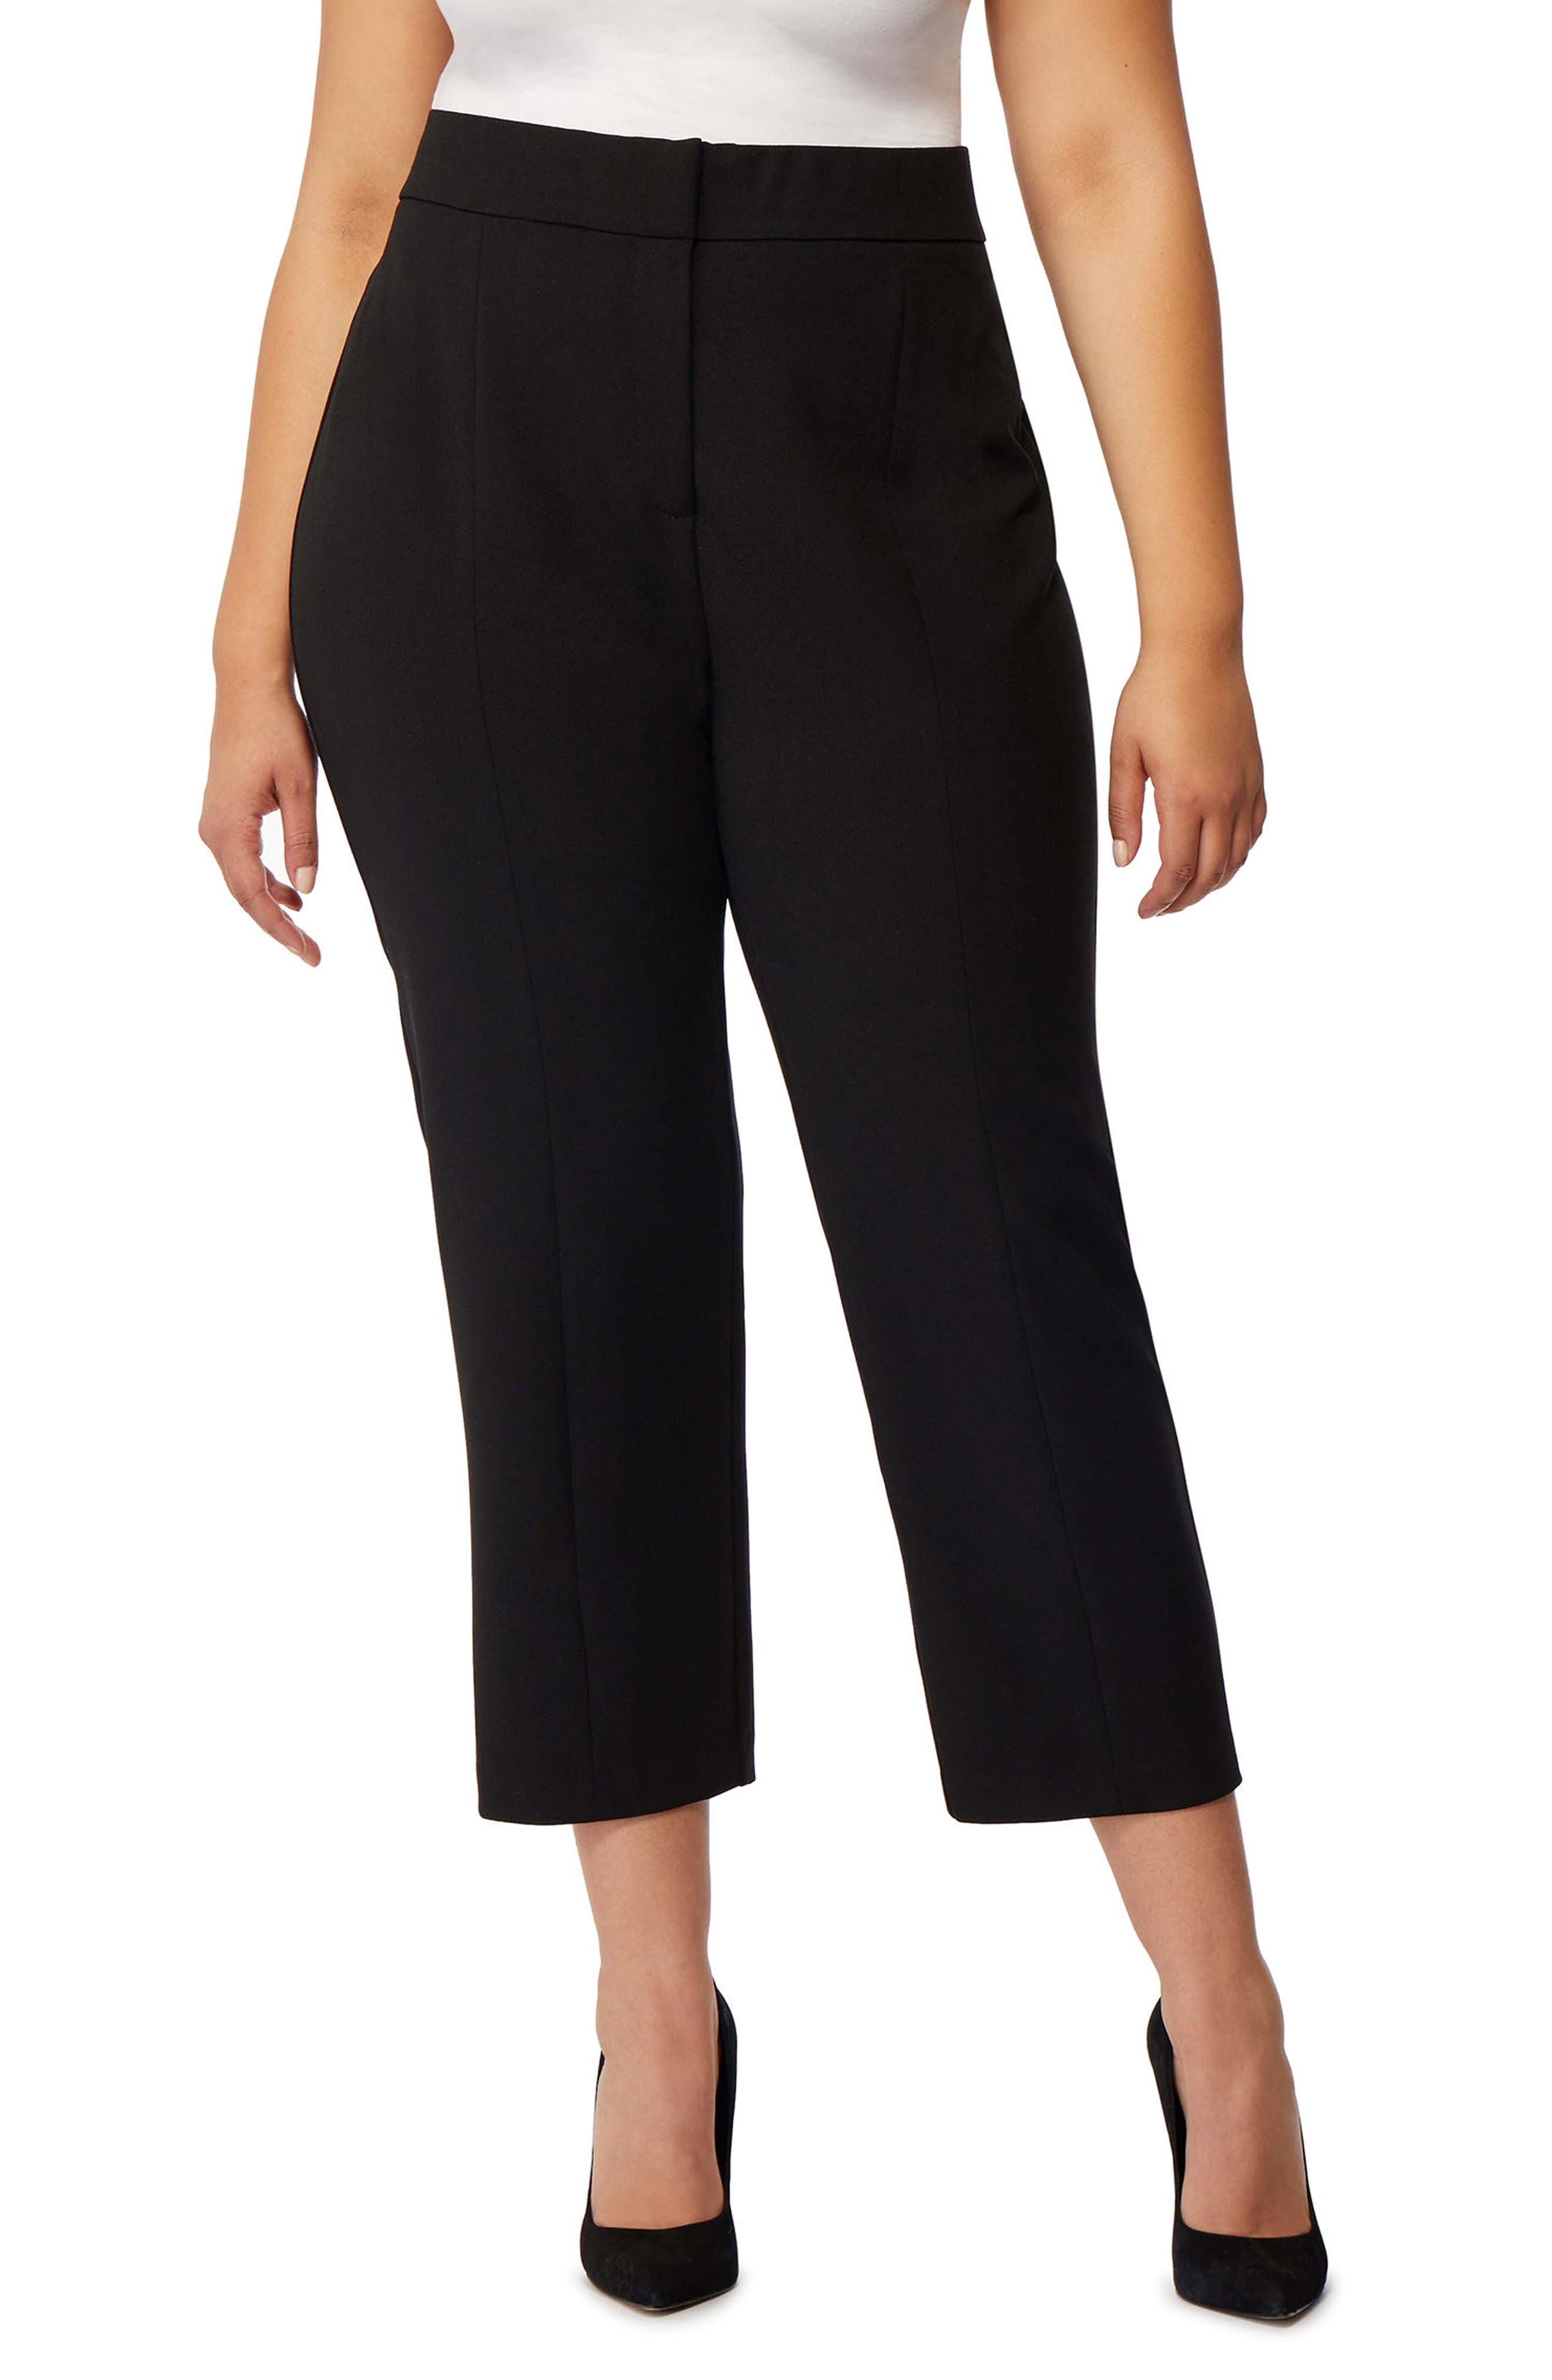 REBEL WILSON X ANGELS Split Hem Pants (Plus Size)